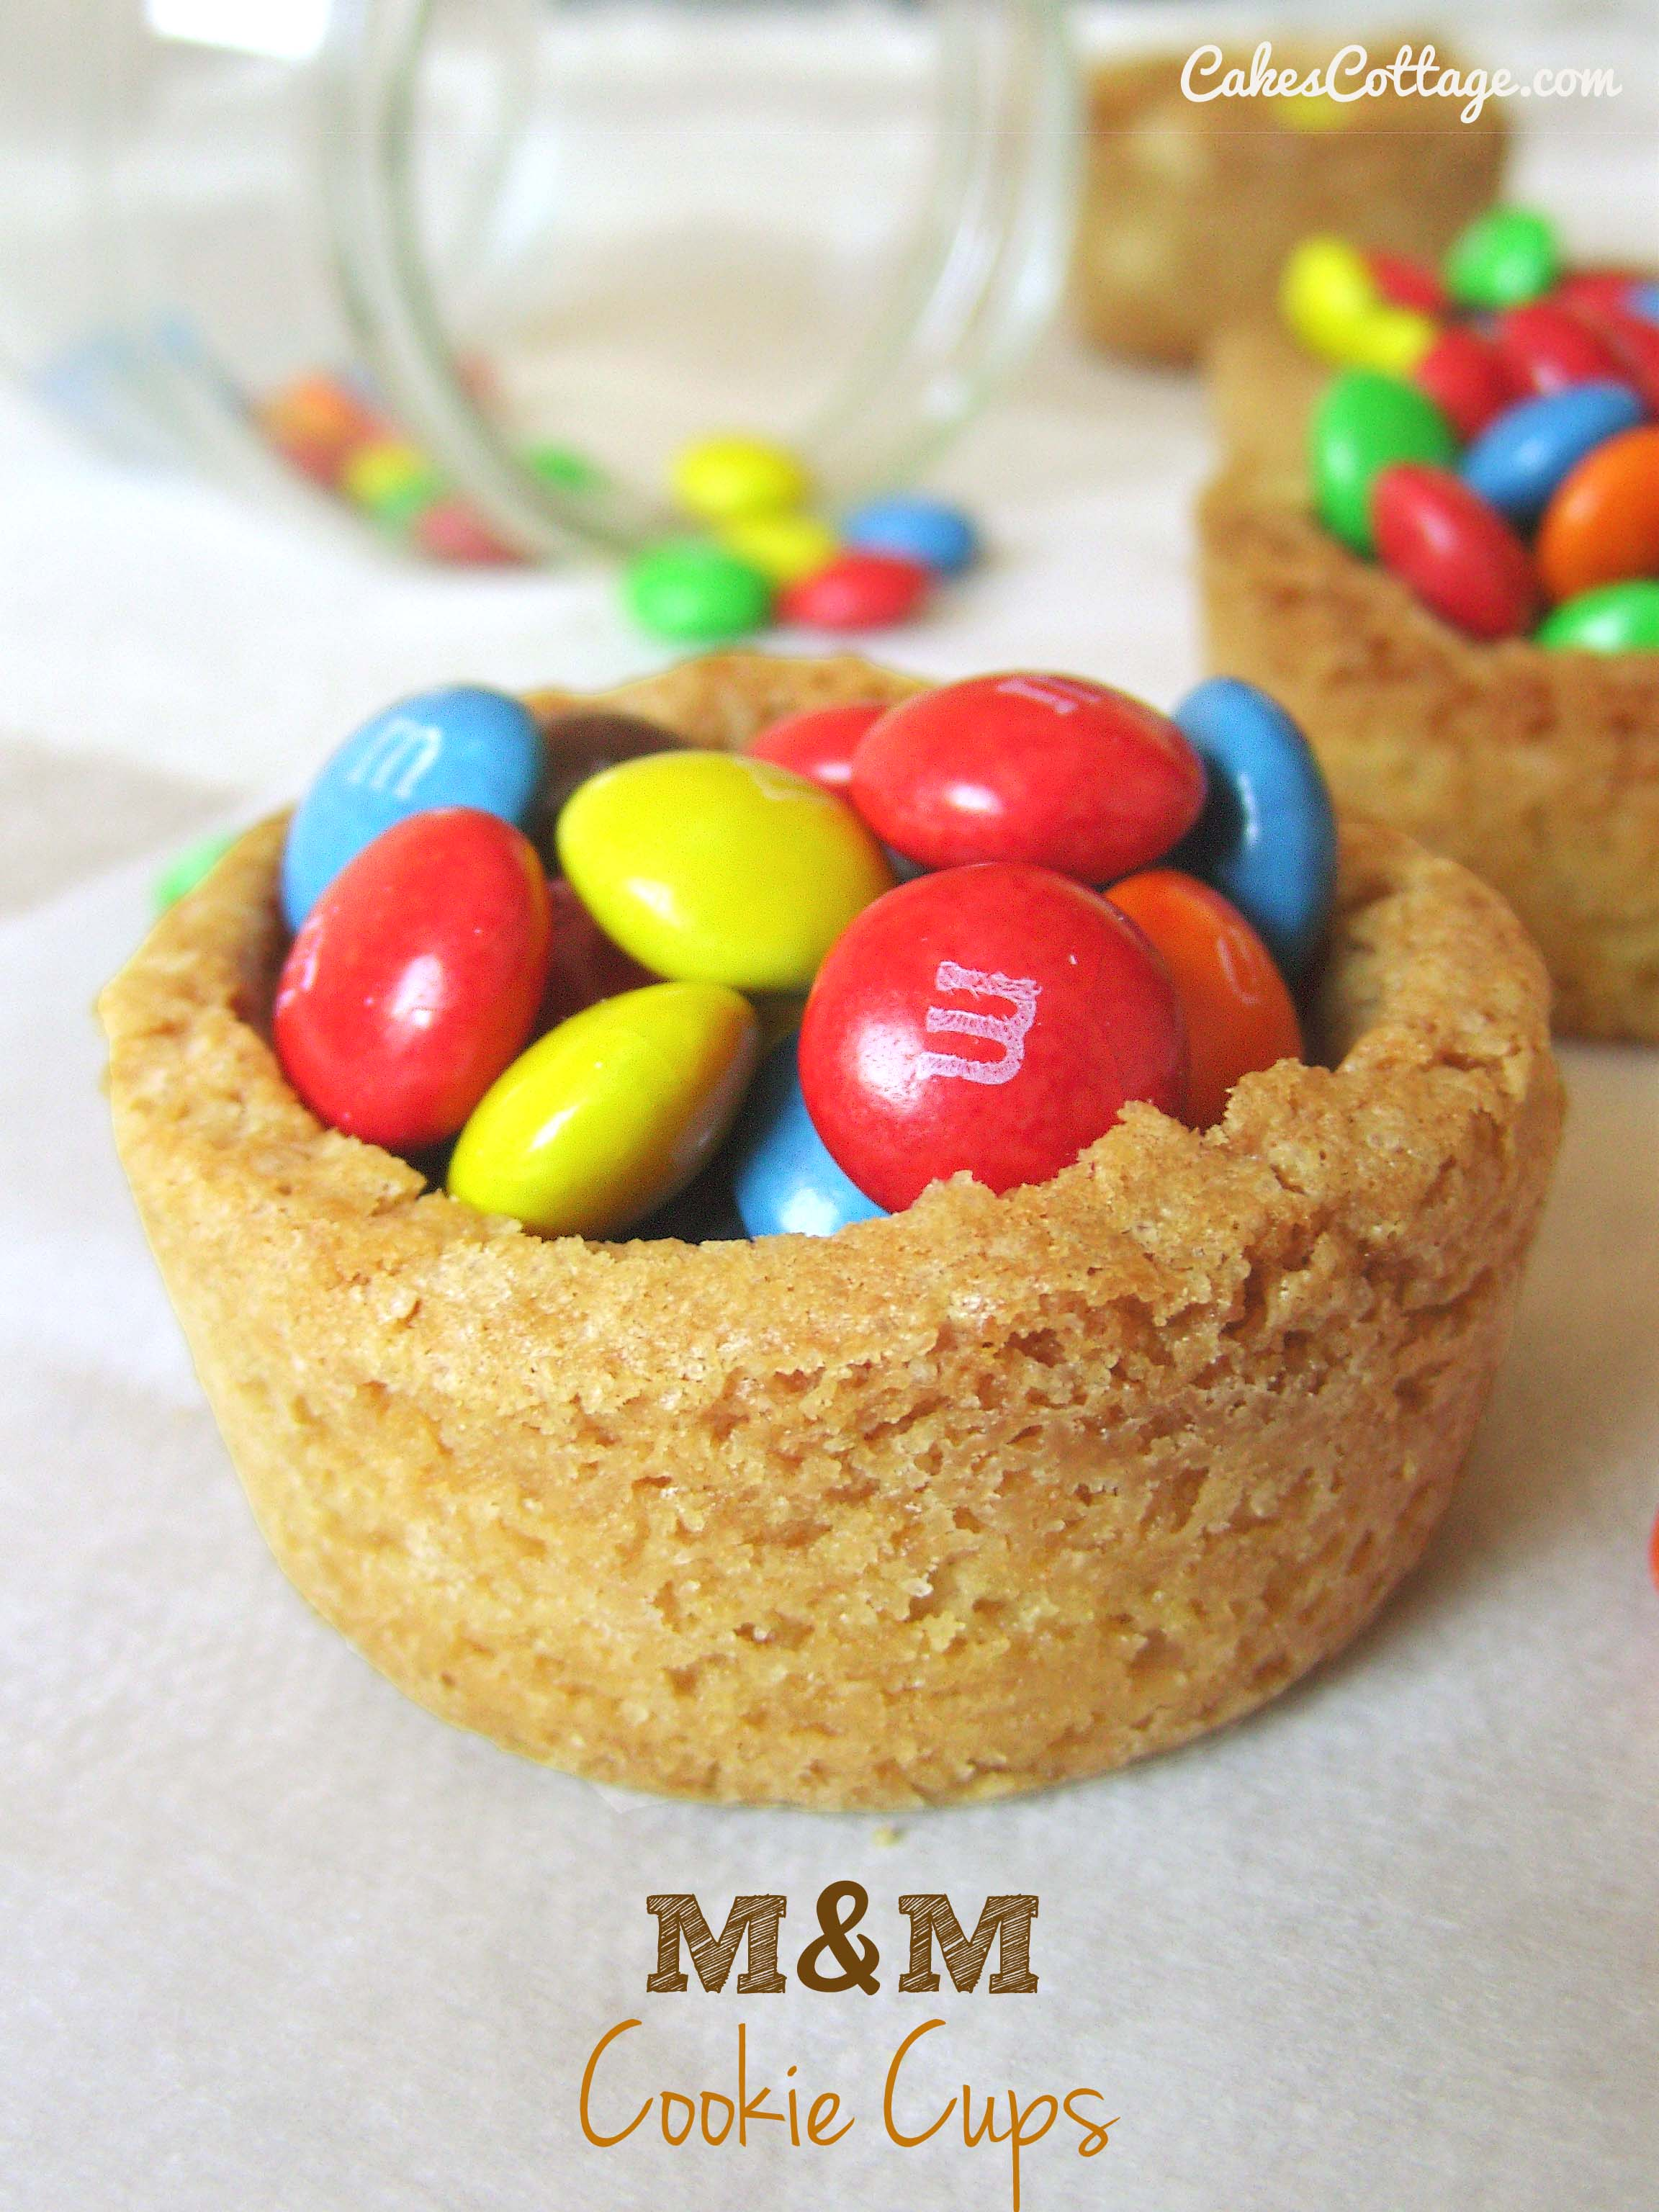 M&M Cookie Cups